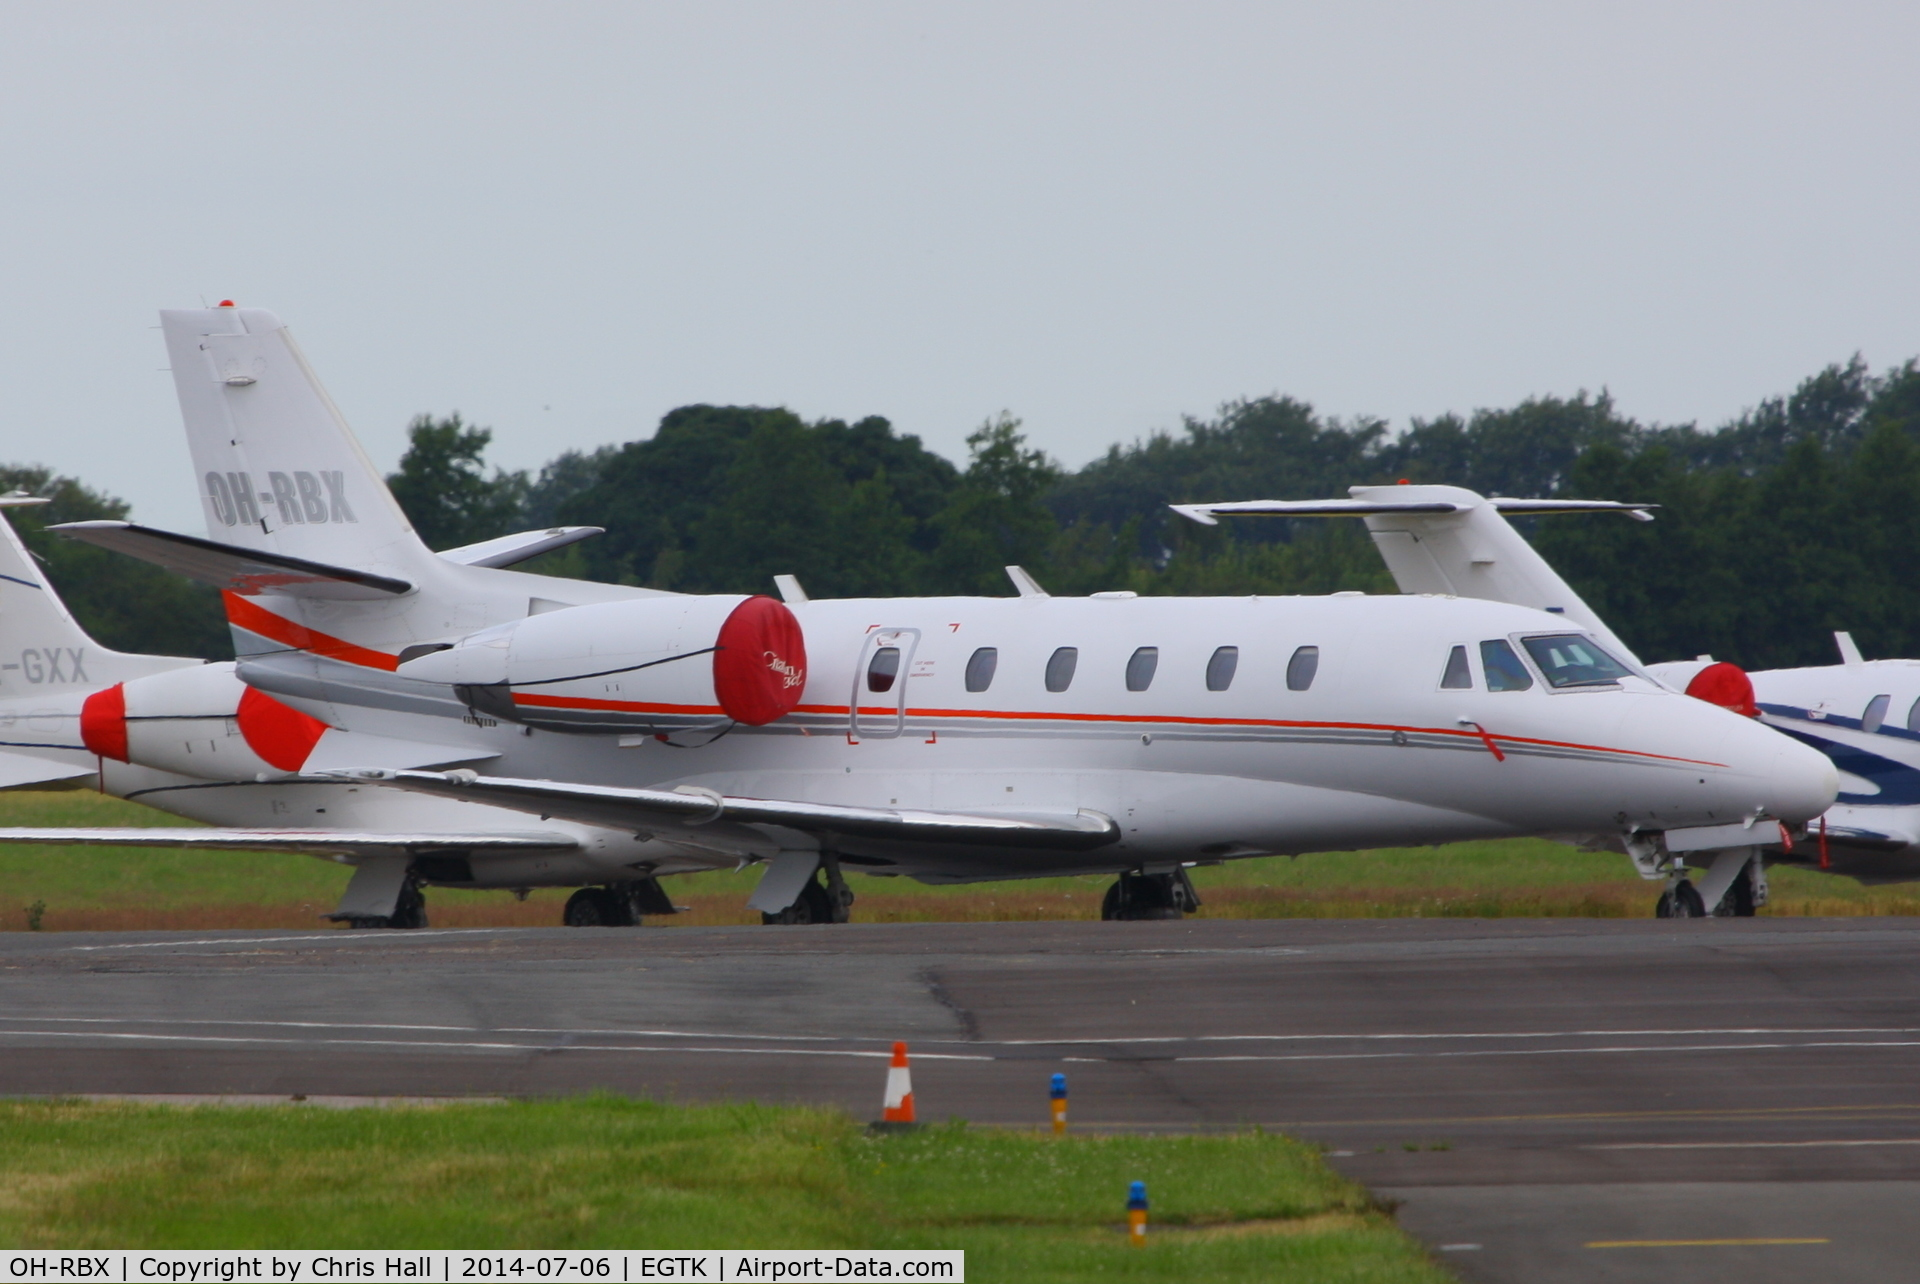 OH-RBX, 1999 Cessna Citation XL C/N 560-5056, River Aviation